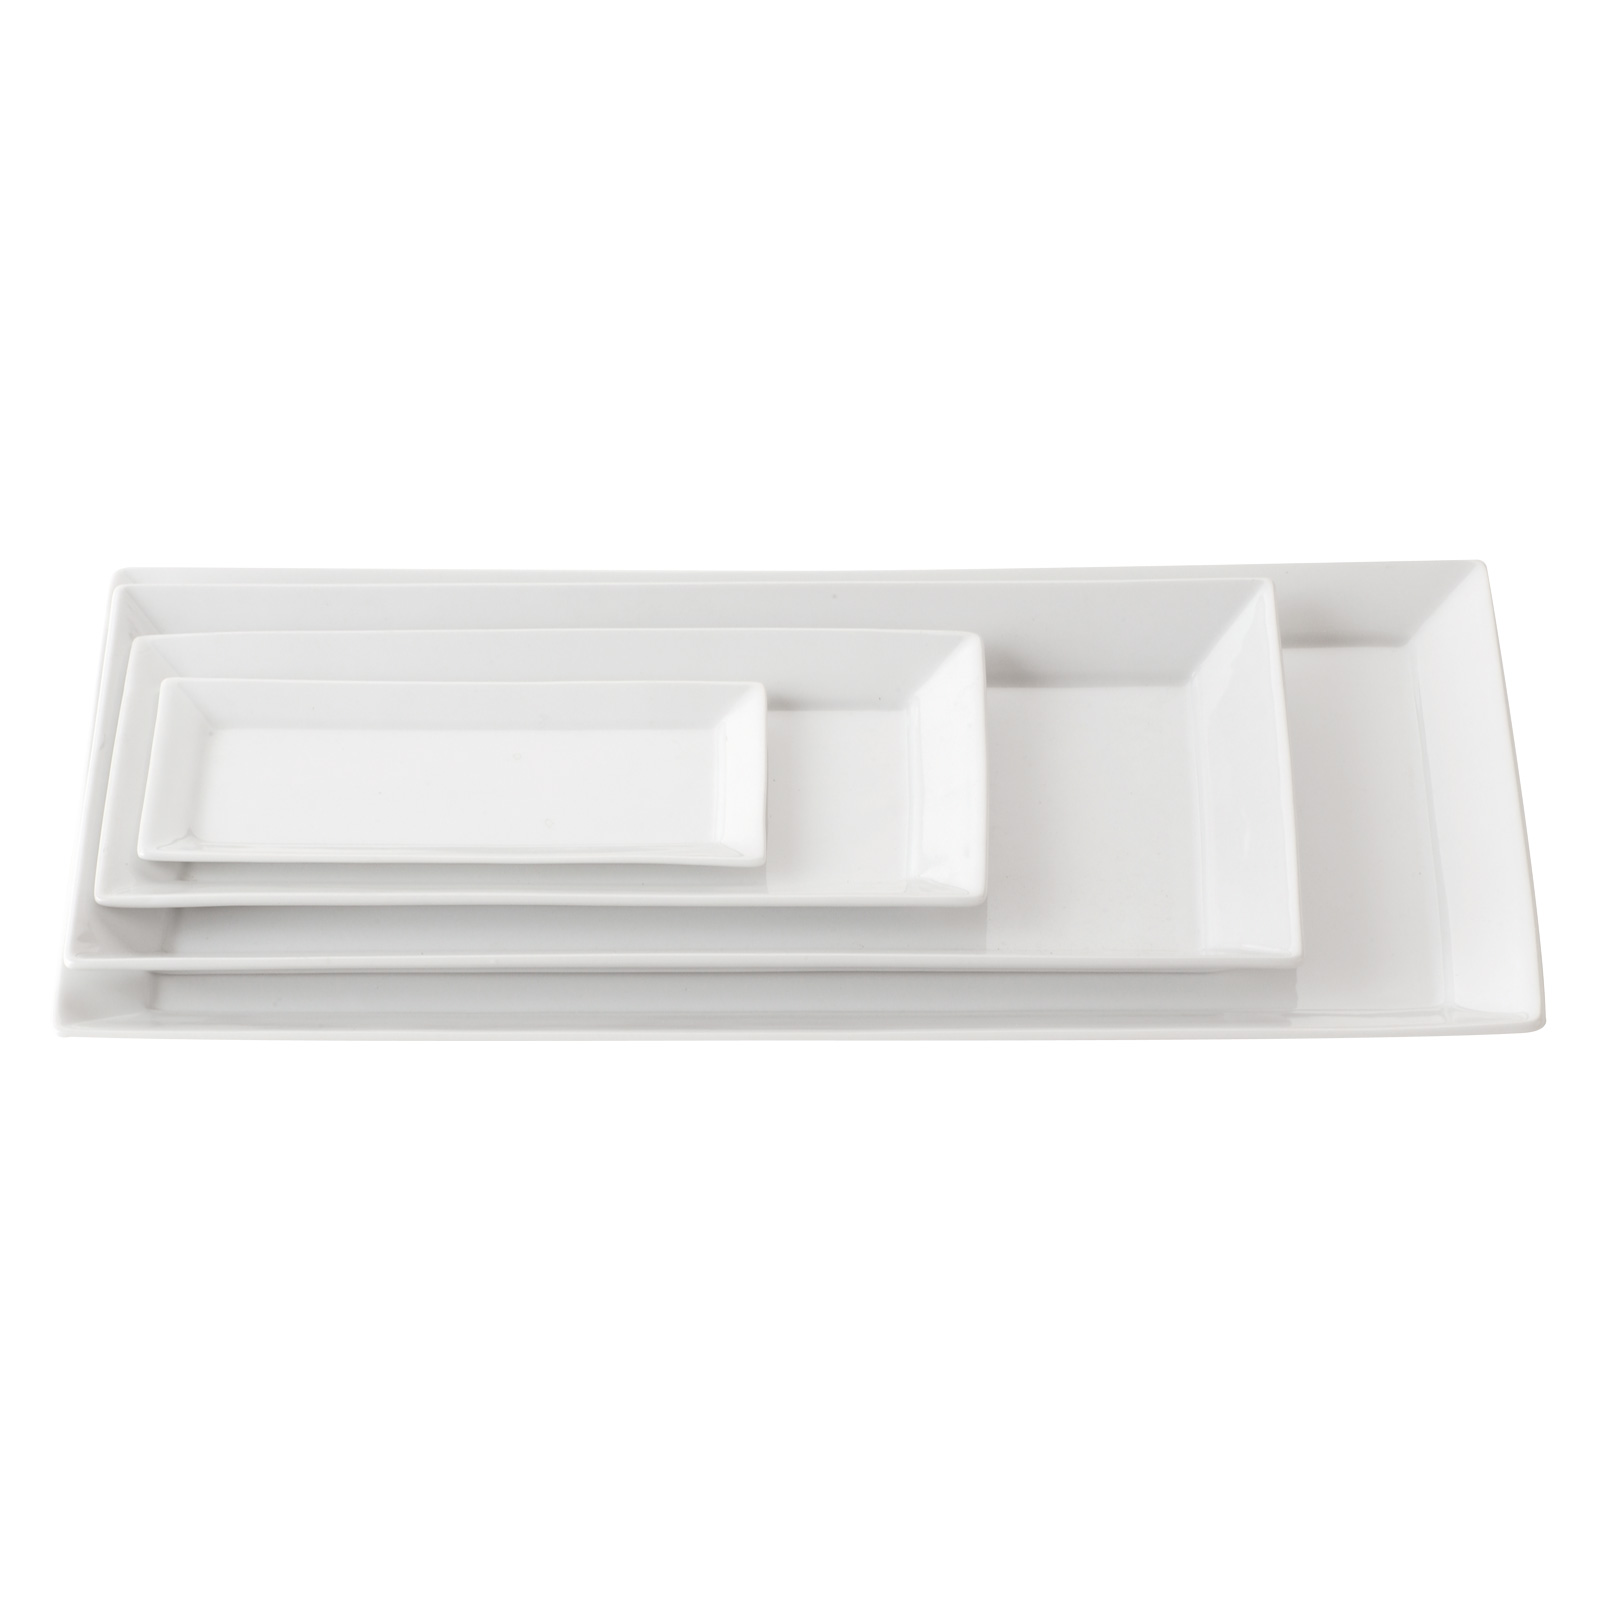 Set of 2 Zensation Rectangular Trays Extra Large by BIA